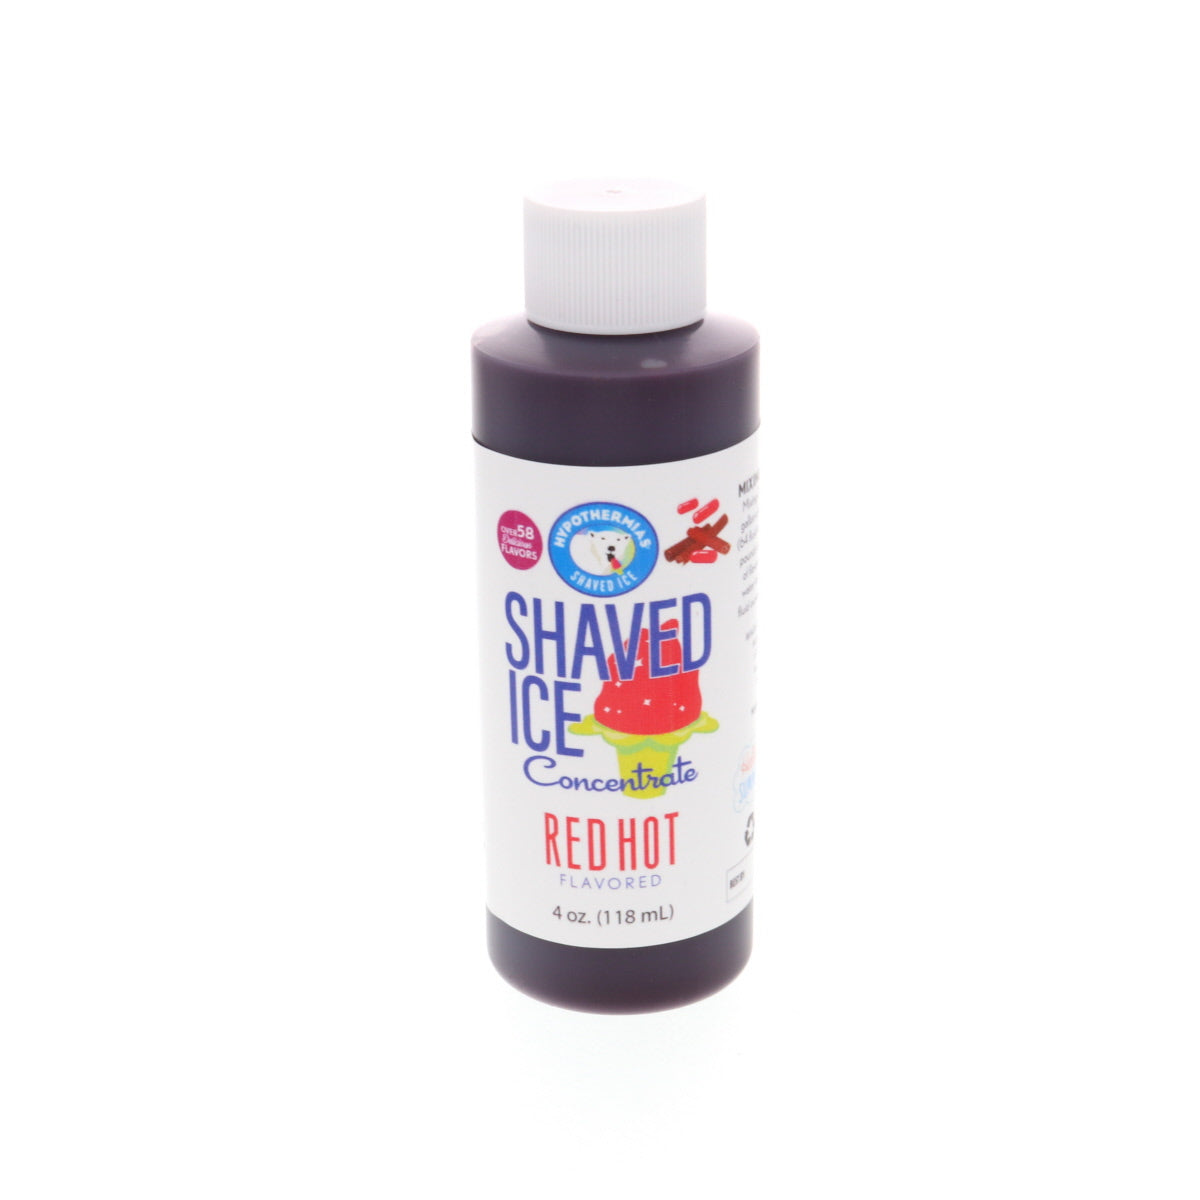 Red hot shave ice flavor concentrate 4 Fl Oz